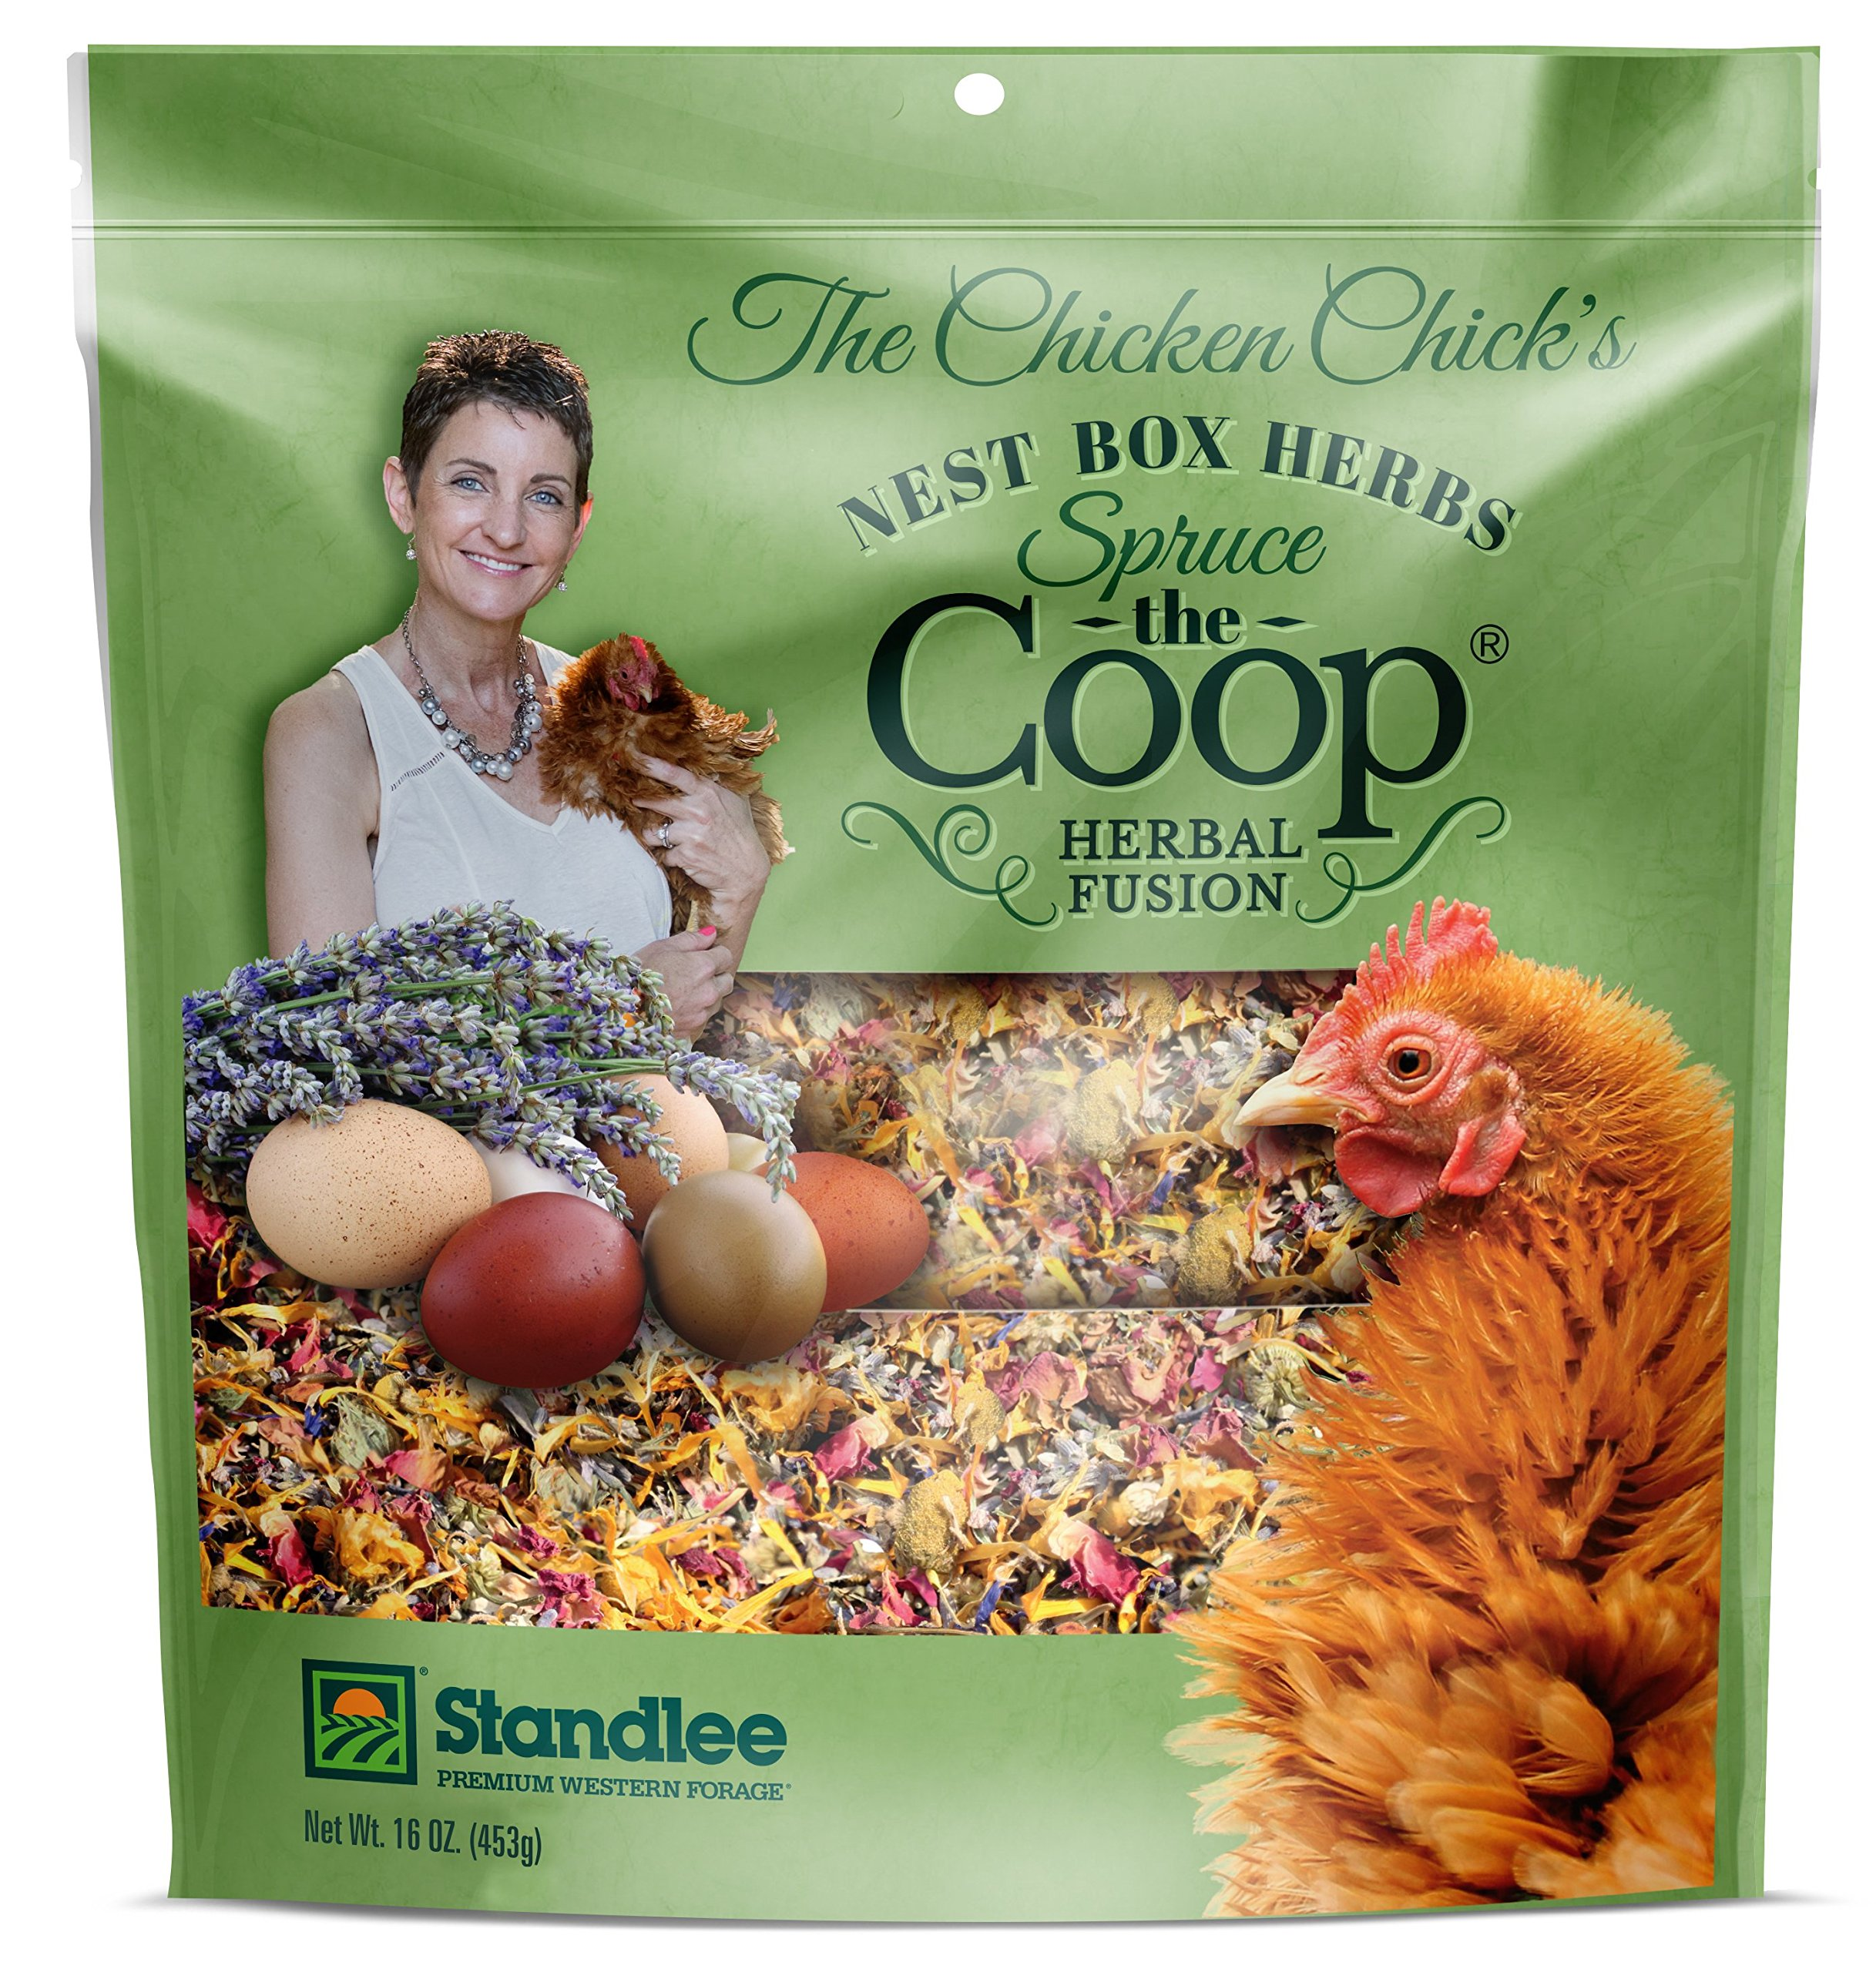 The Chicken Chick Spruce The Coop Herbal Fusion Nest Box Herbs, 16 oz by The Chicken Chick